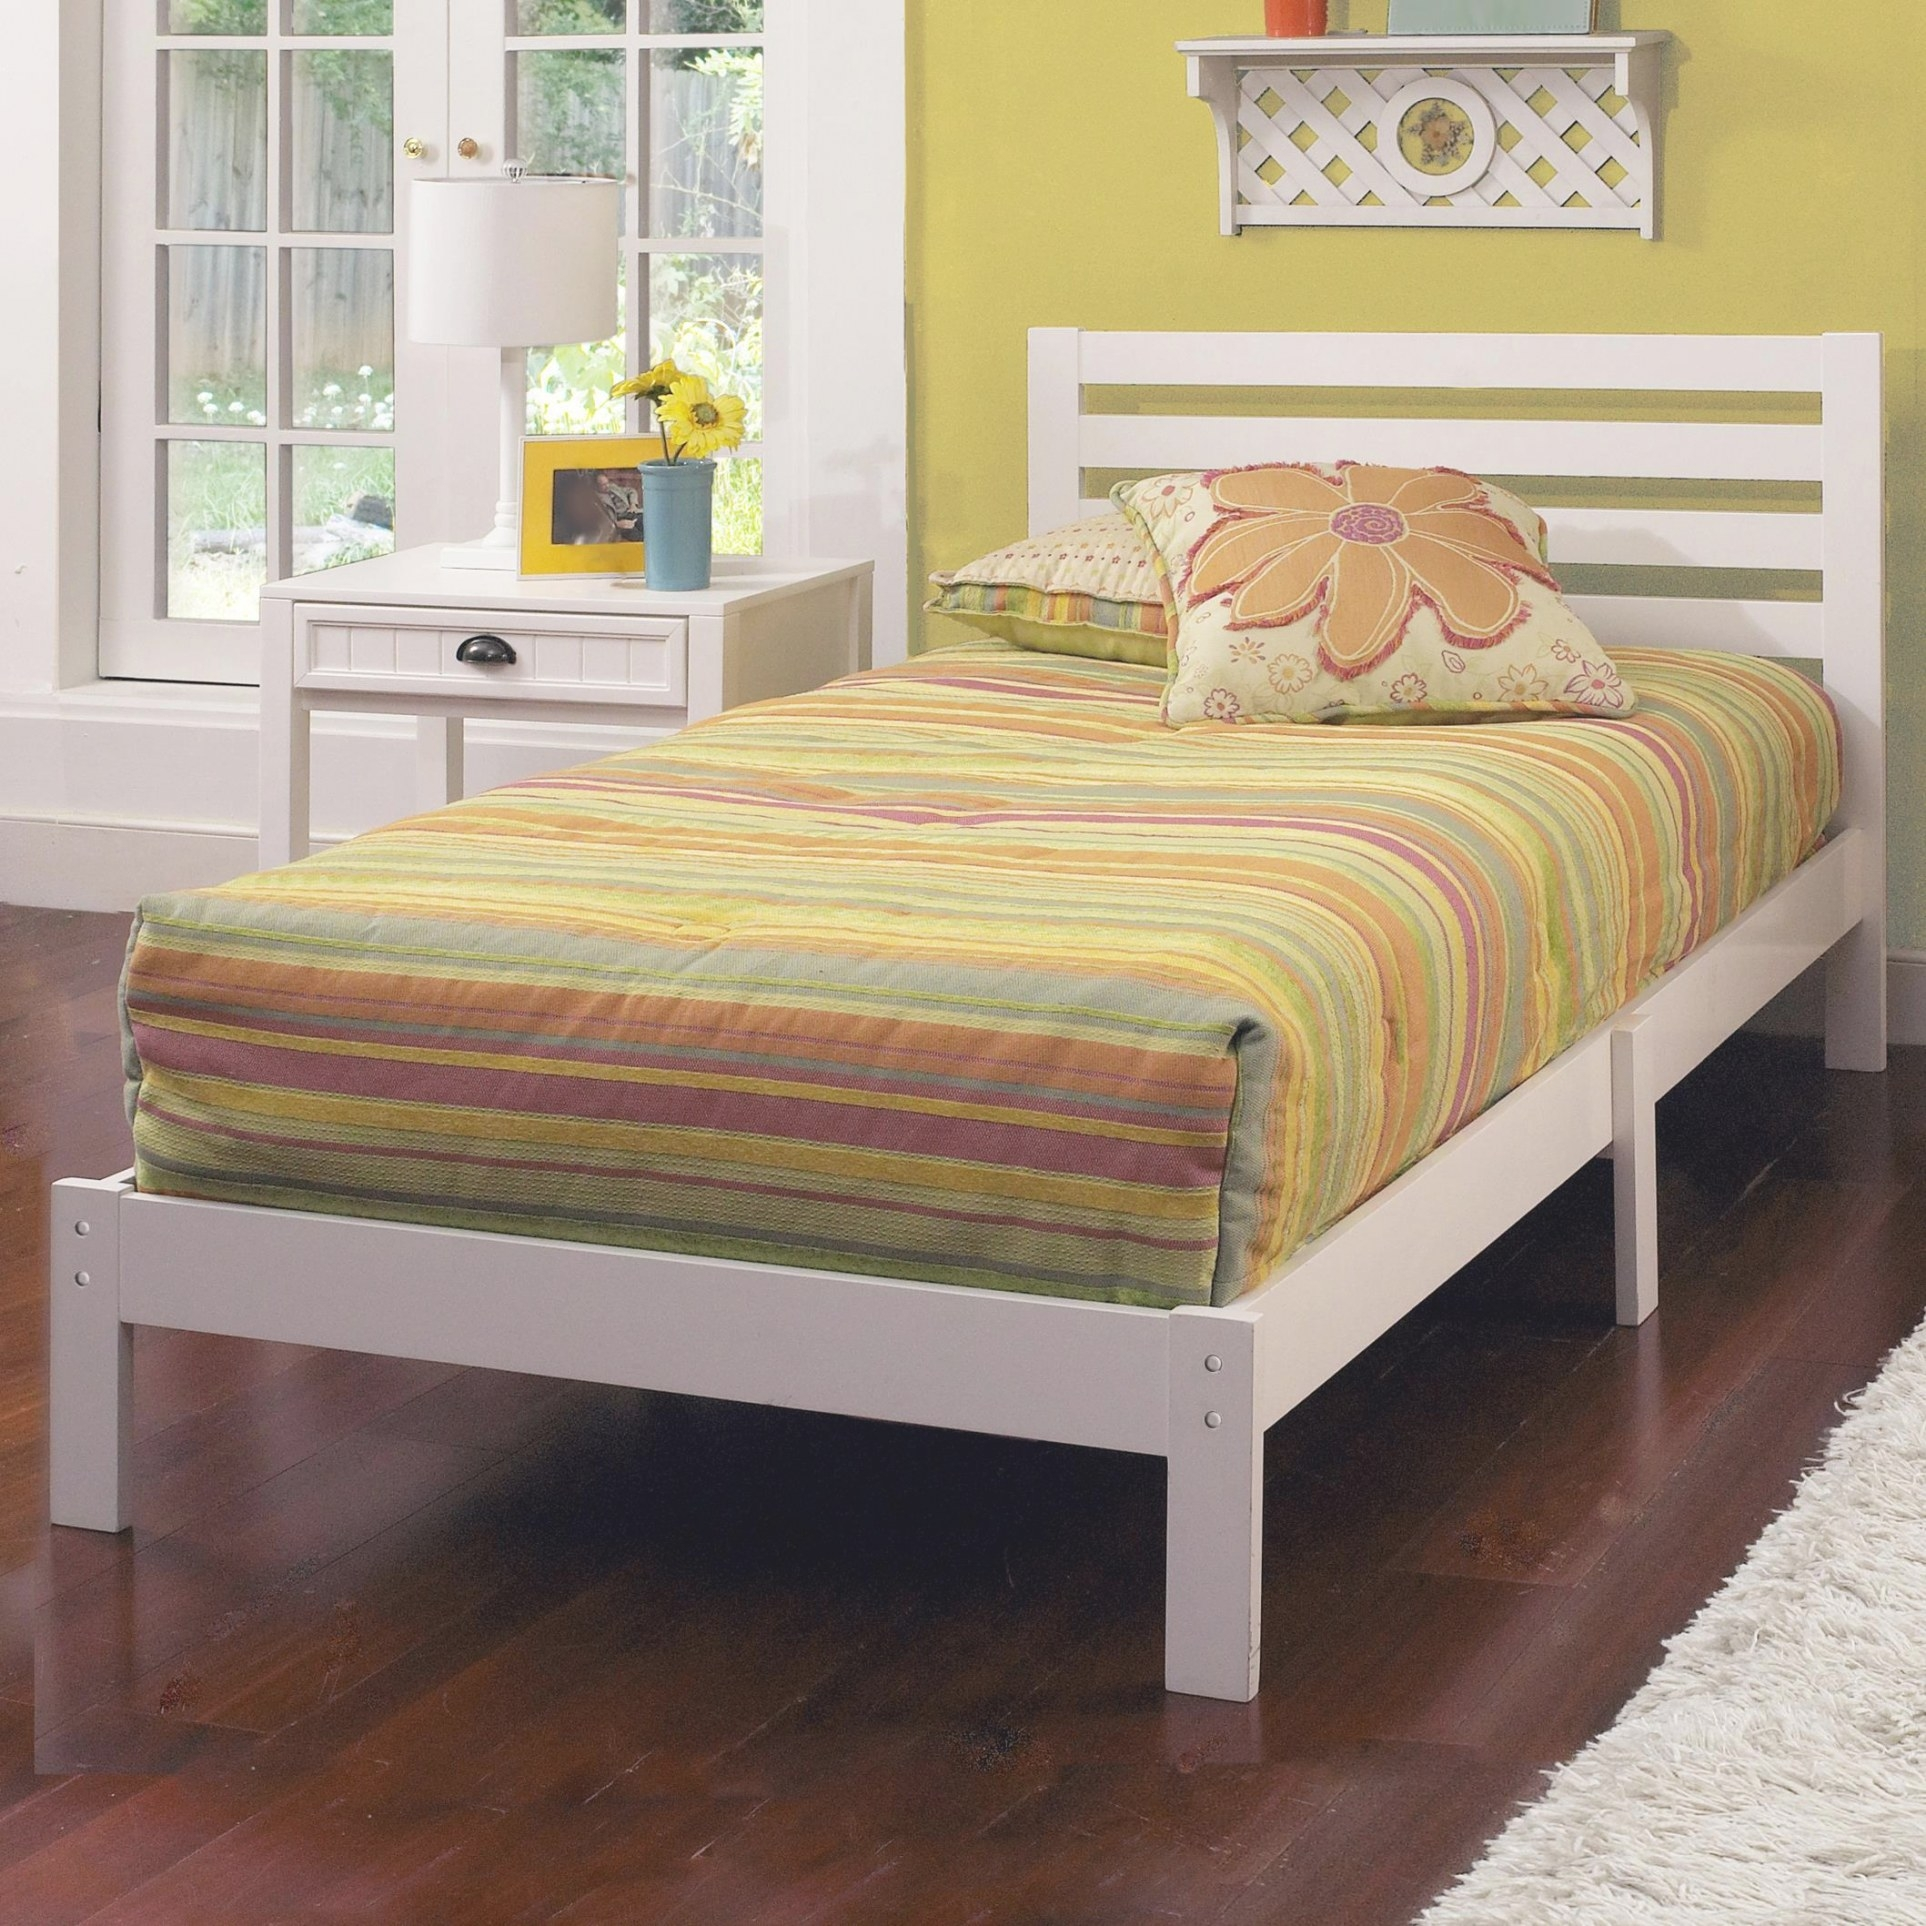 Hillsdale Wood Beds Twin Platform Bed Set   A1 Furniture intended for Low Profile Bunk Beds